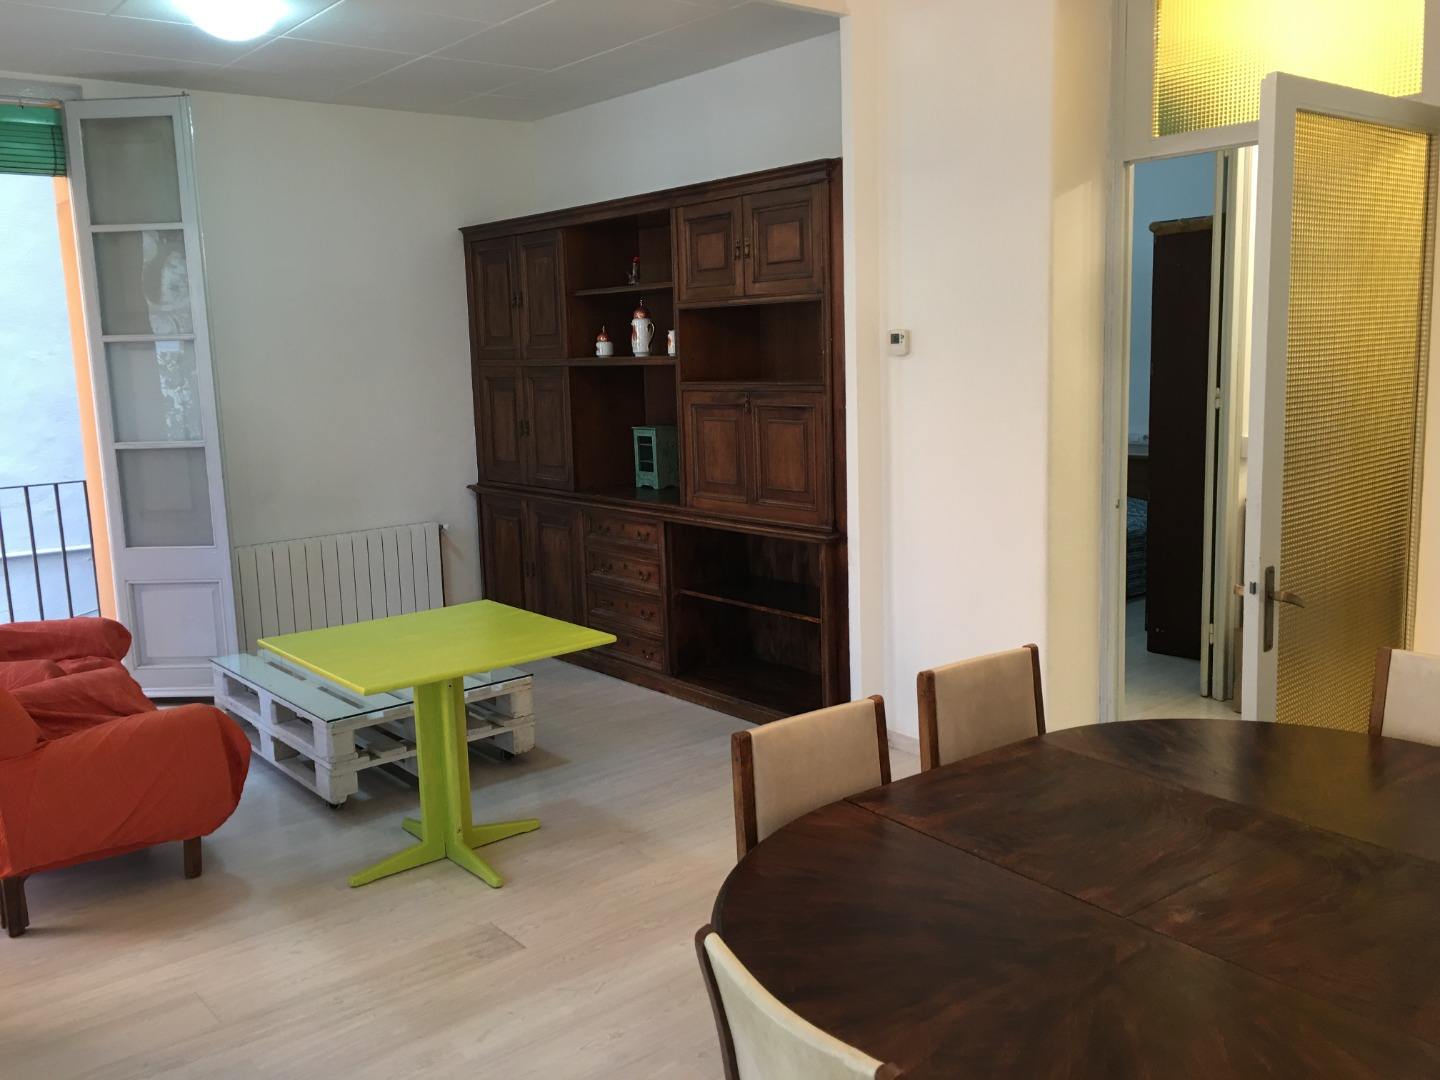 Location Appartement  Olot. Se alquila piso en la plaza mayor de olot